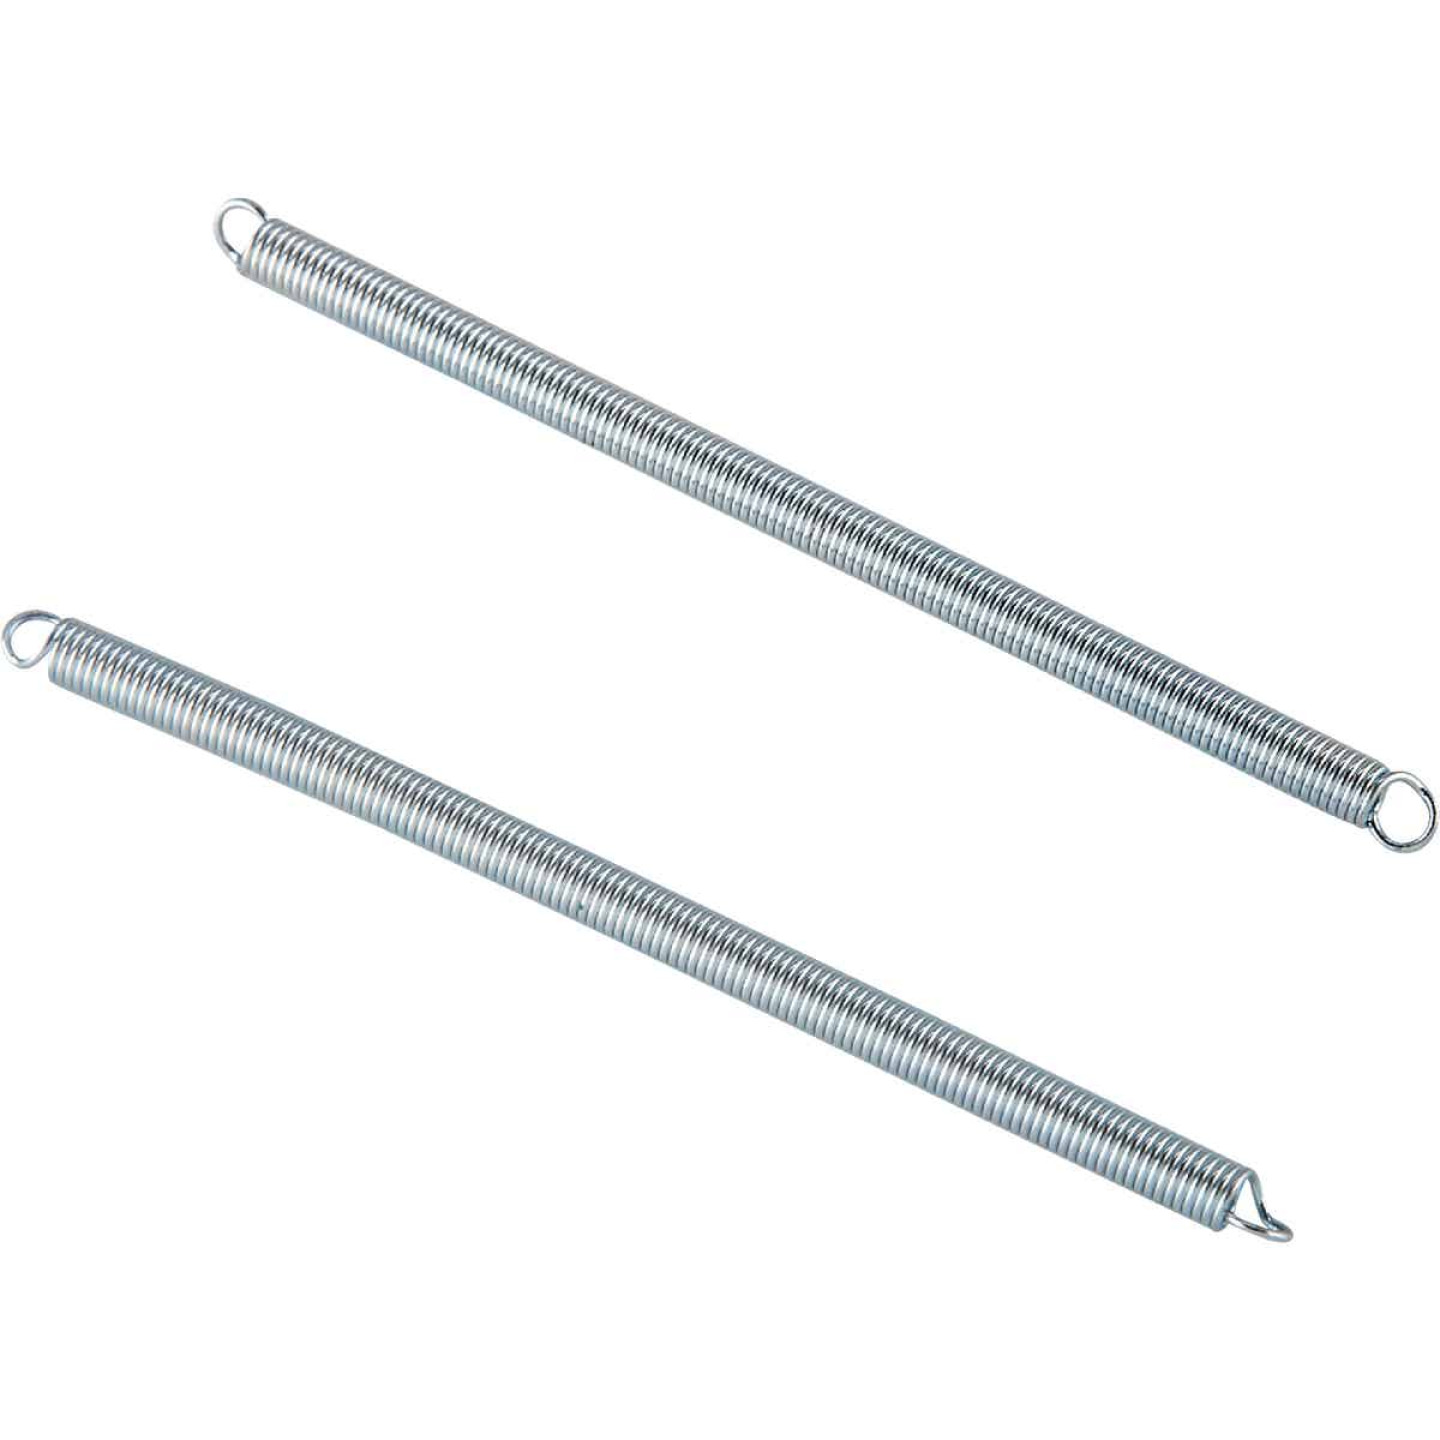 Century Spring 2-3/4 In. x 7/16 In. Extension Spring (2 Count) Image 1